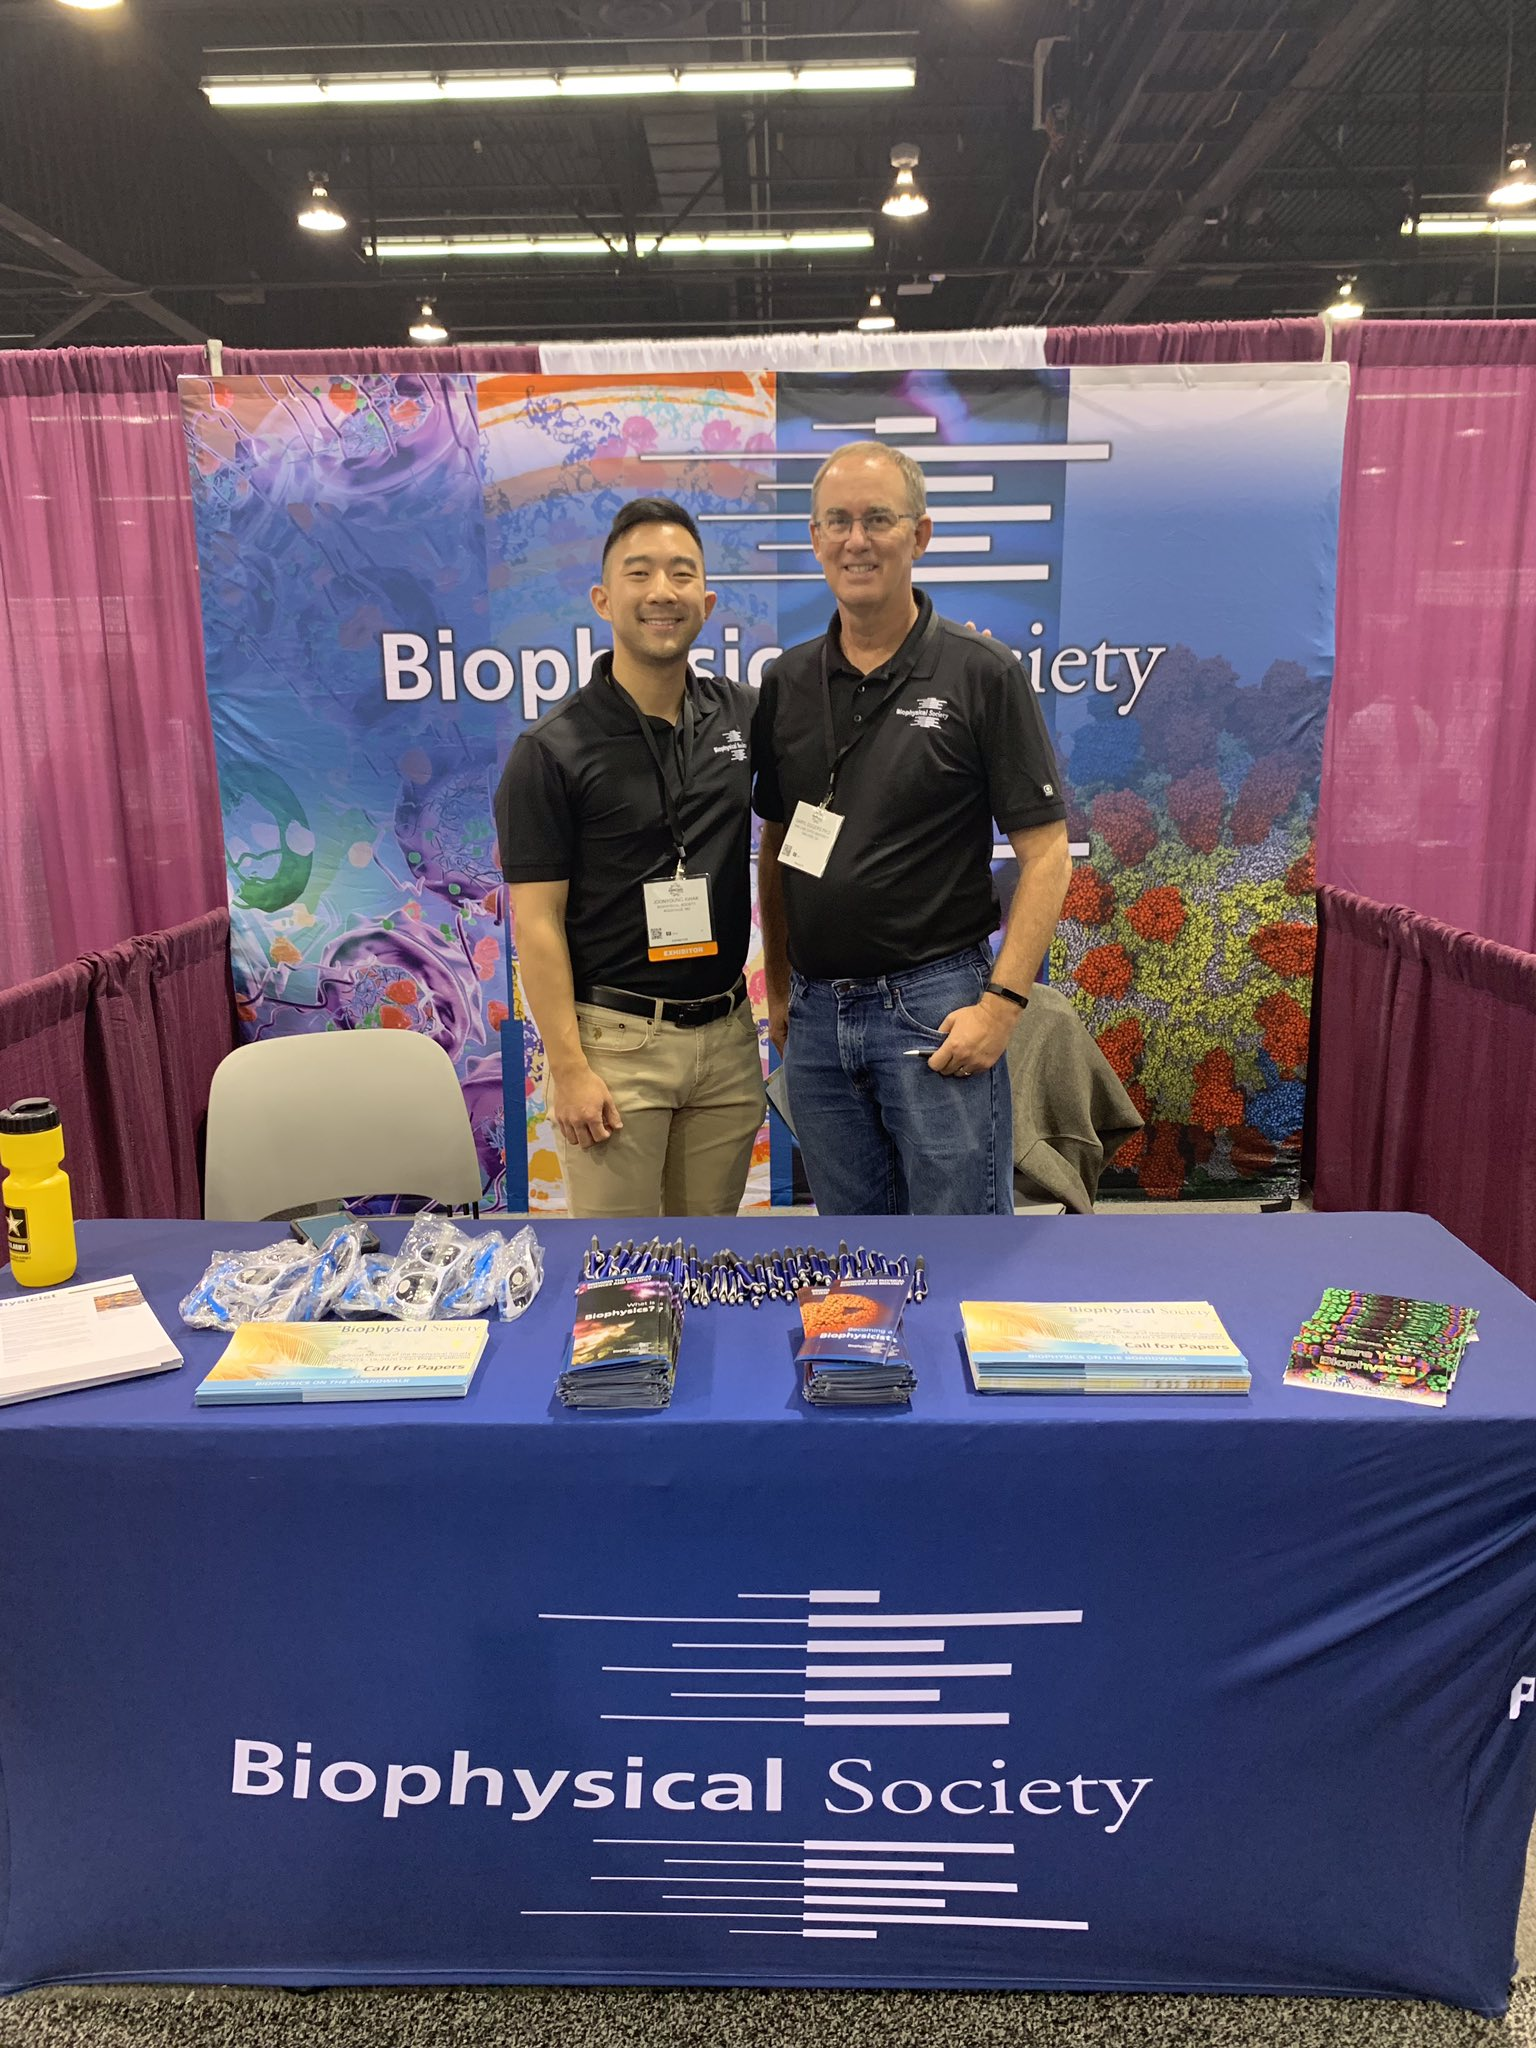 Joon Kwak (Left) and Daryl Eggers (Right), excited to interact with conference attendees!